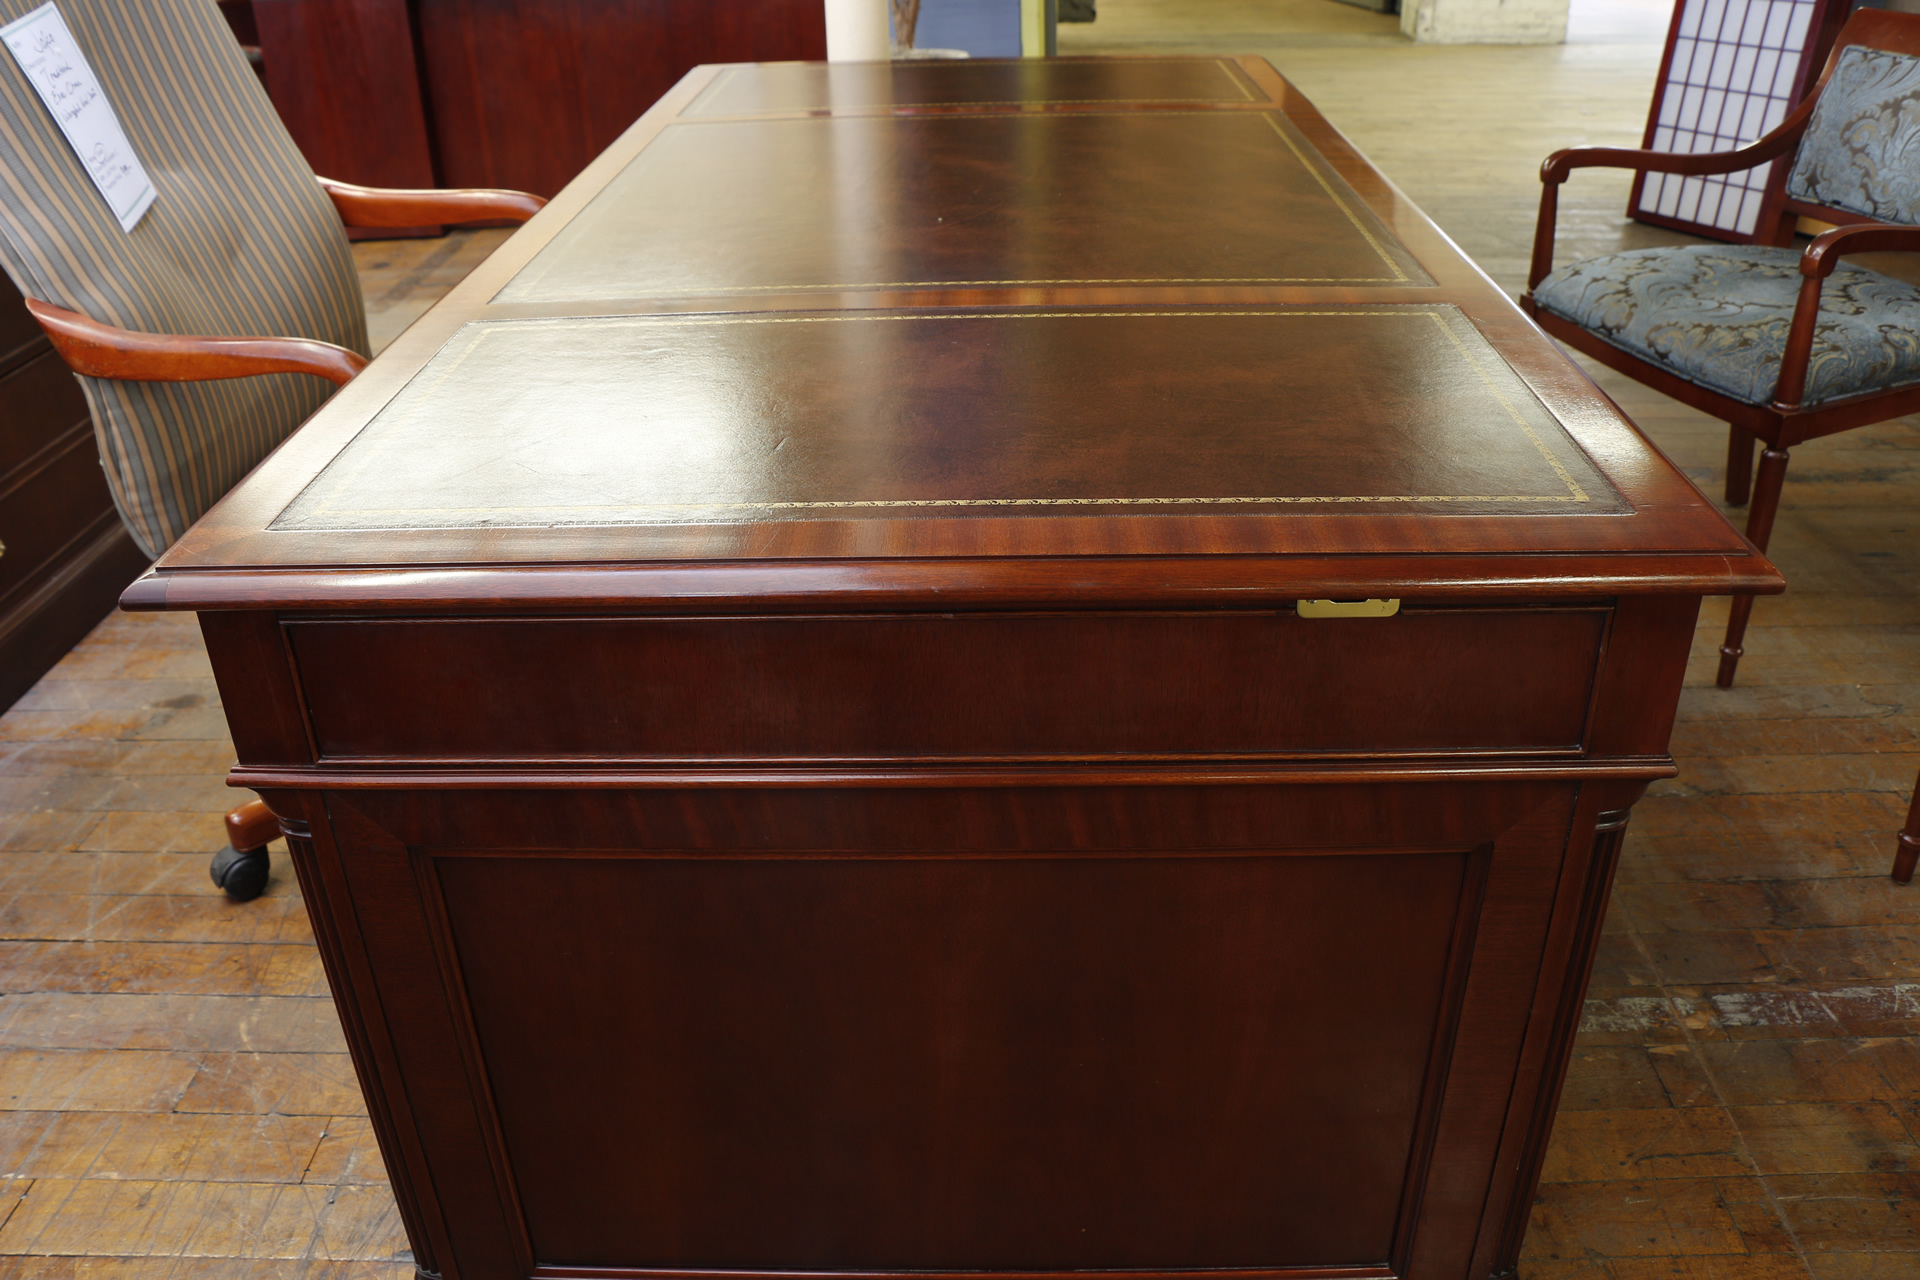 peartreeofficefurniture_peartreeofficefurniture_mg_4227.jpg